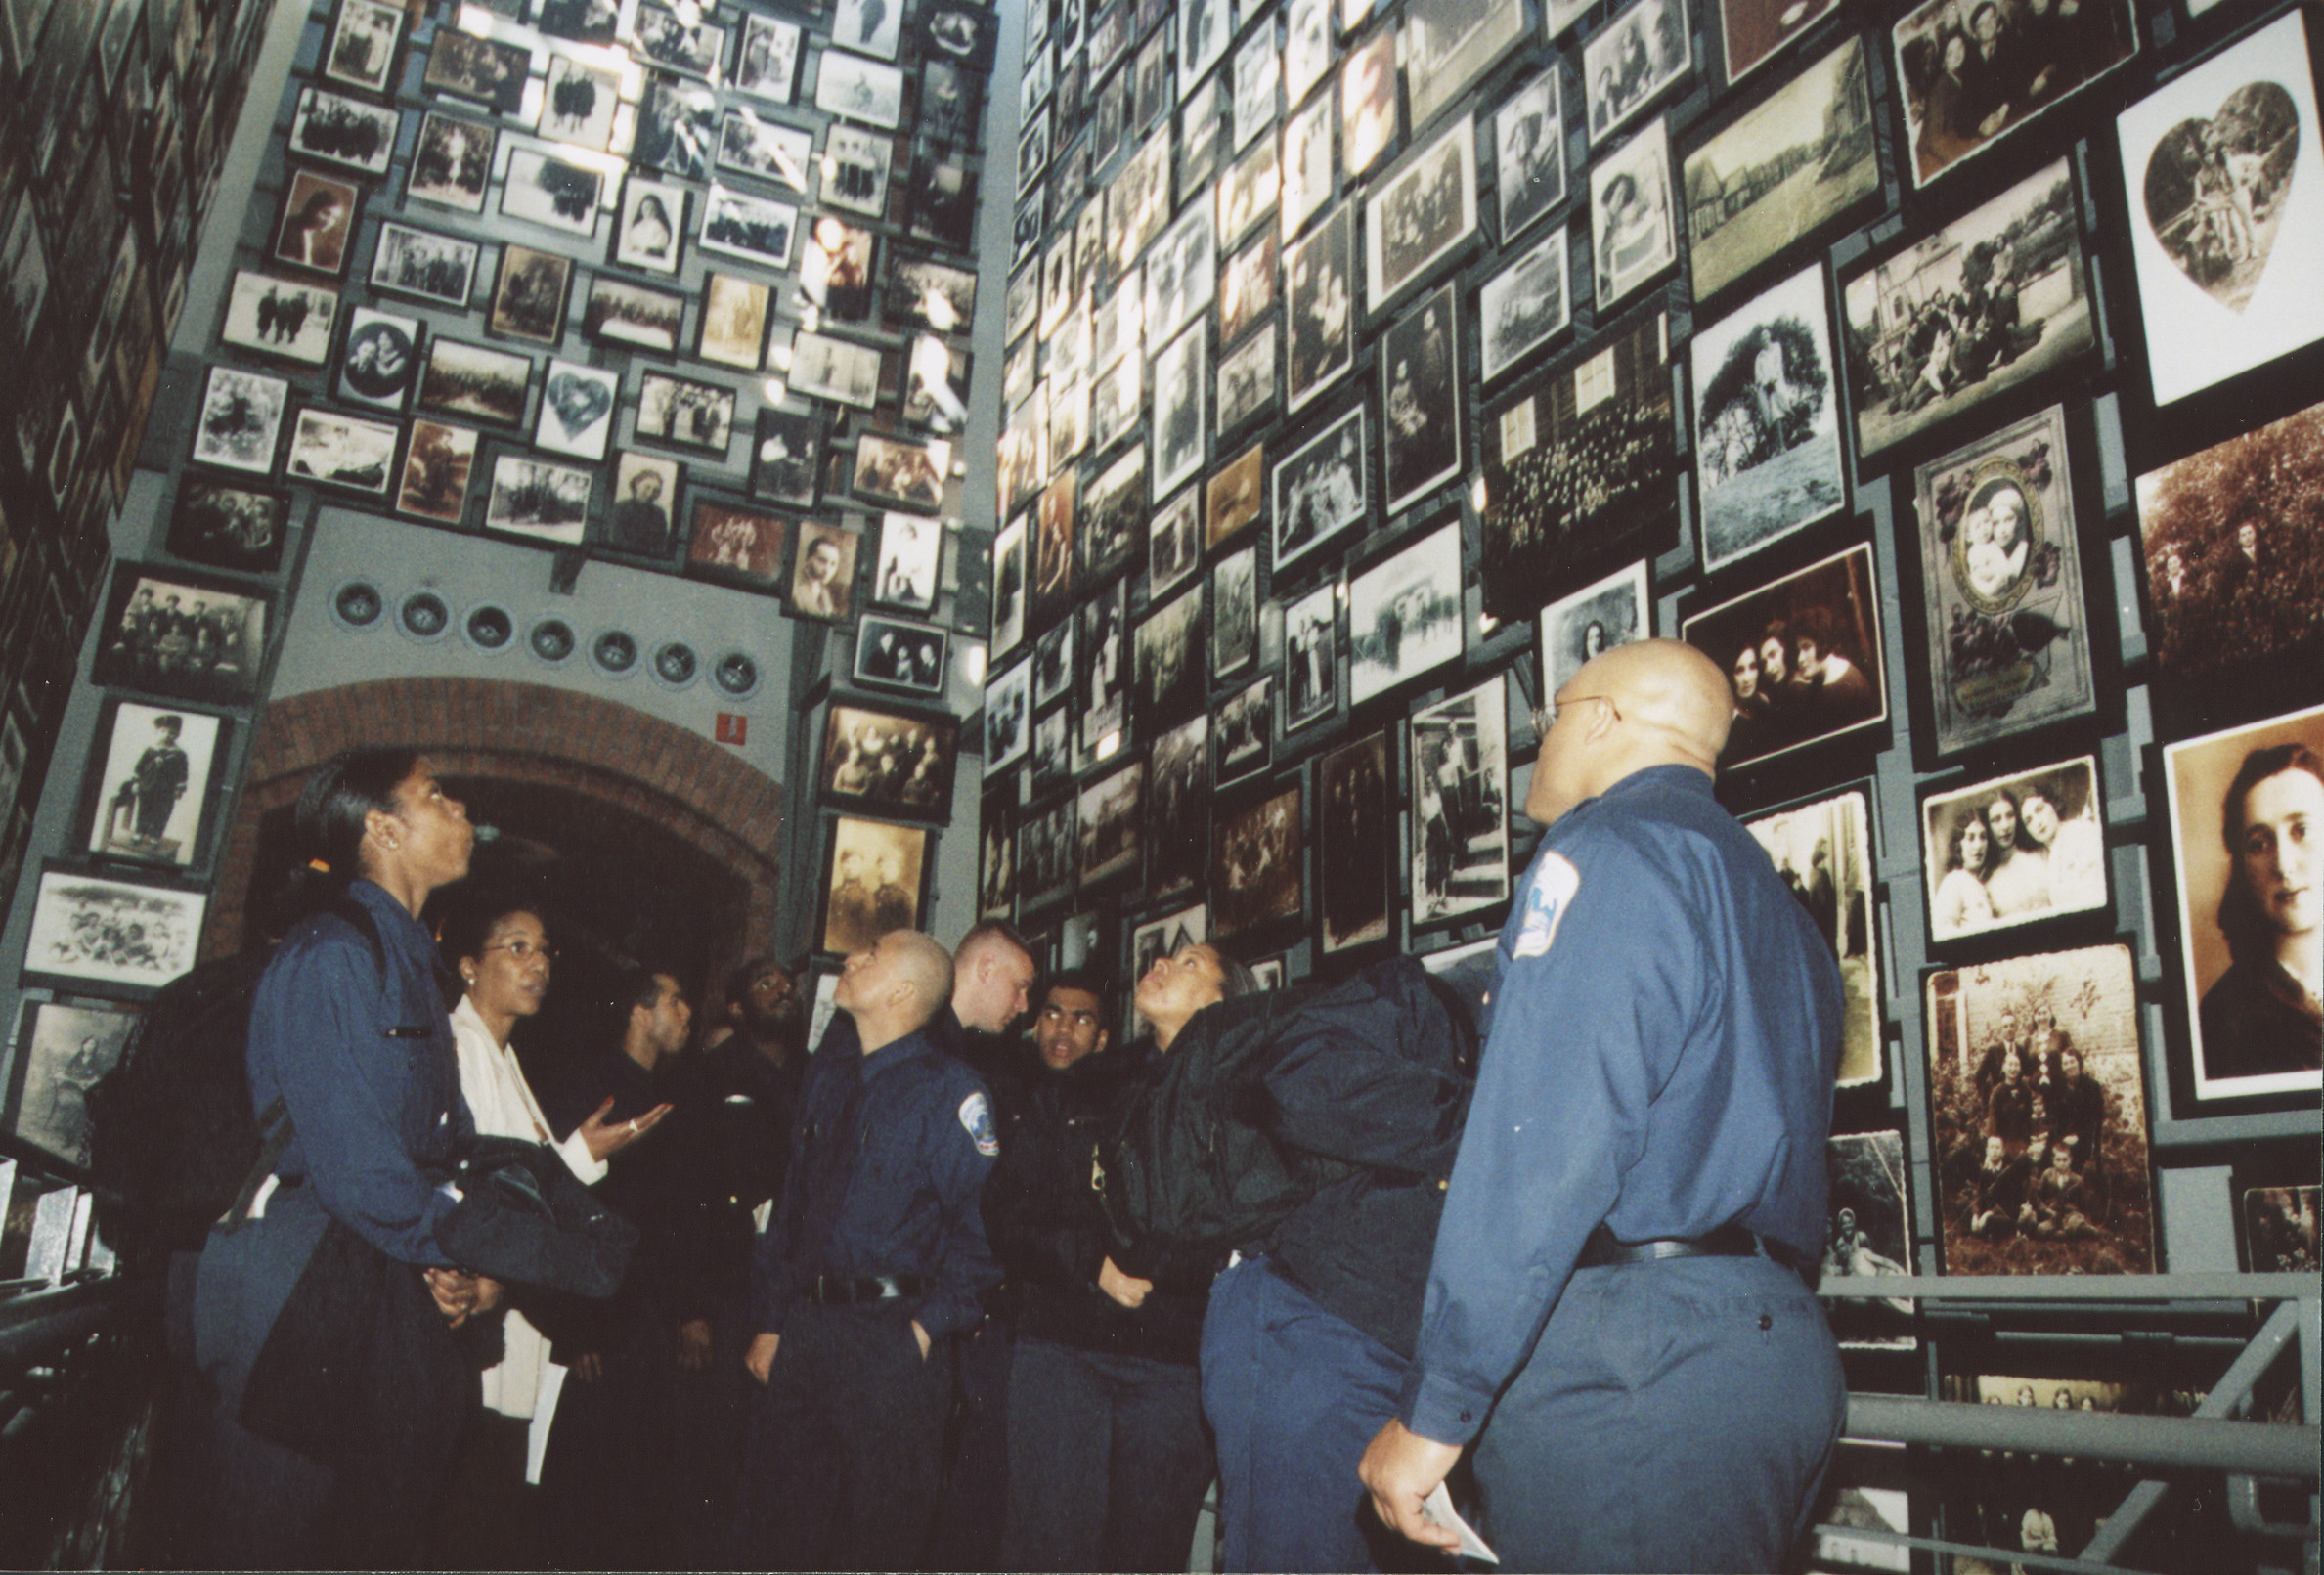 DC police training squad visits the U.S. Holocaust Memorial Museum.  Officers view the Tower of Faces (the Yaffa Eliach Shtetl Collection) in the Permanent Exhibition.